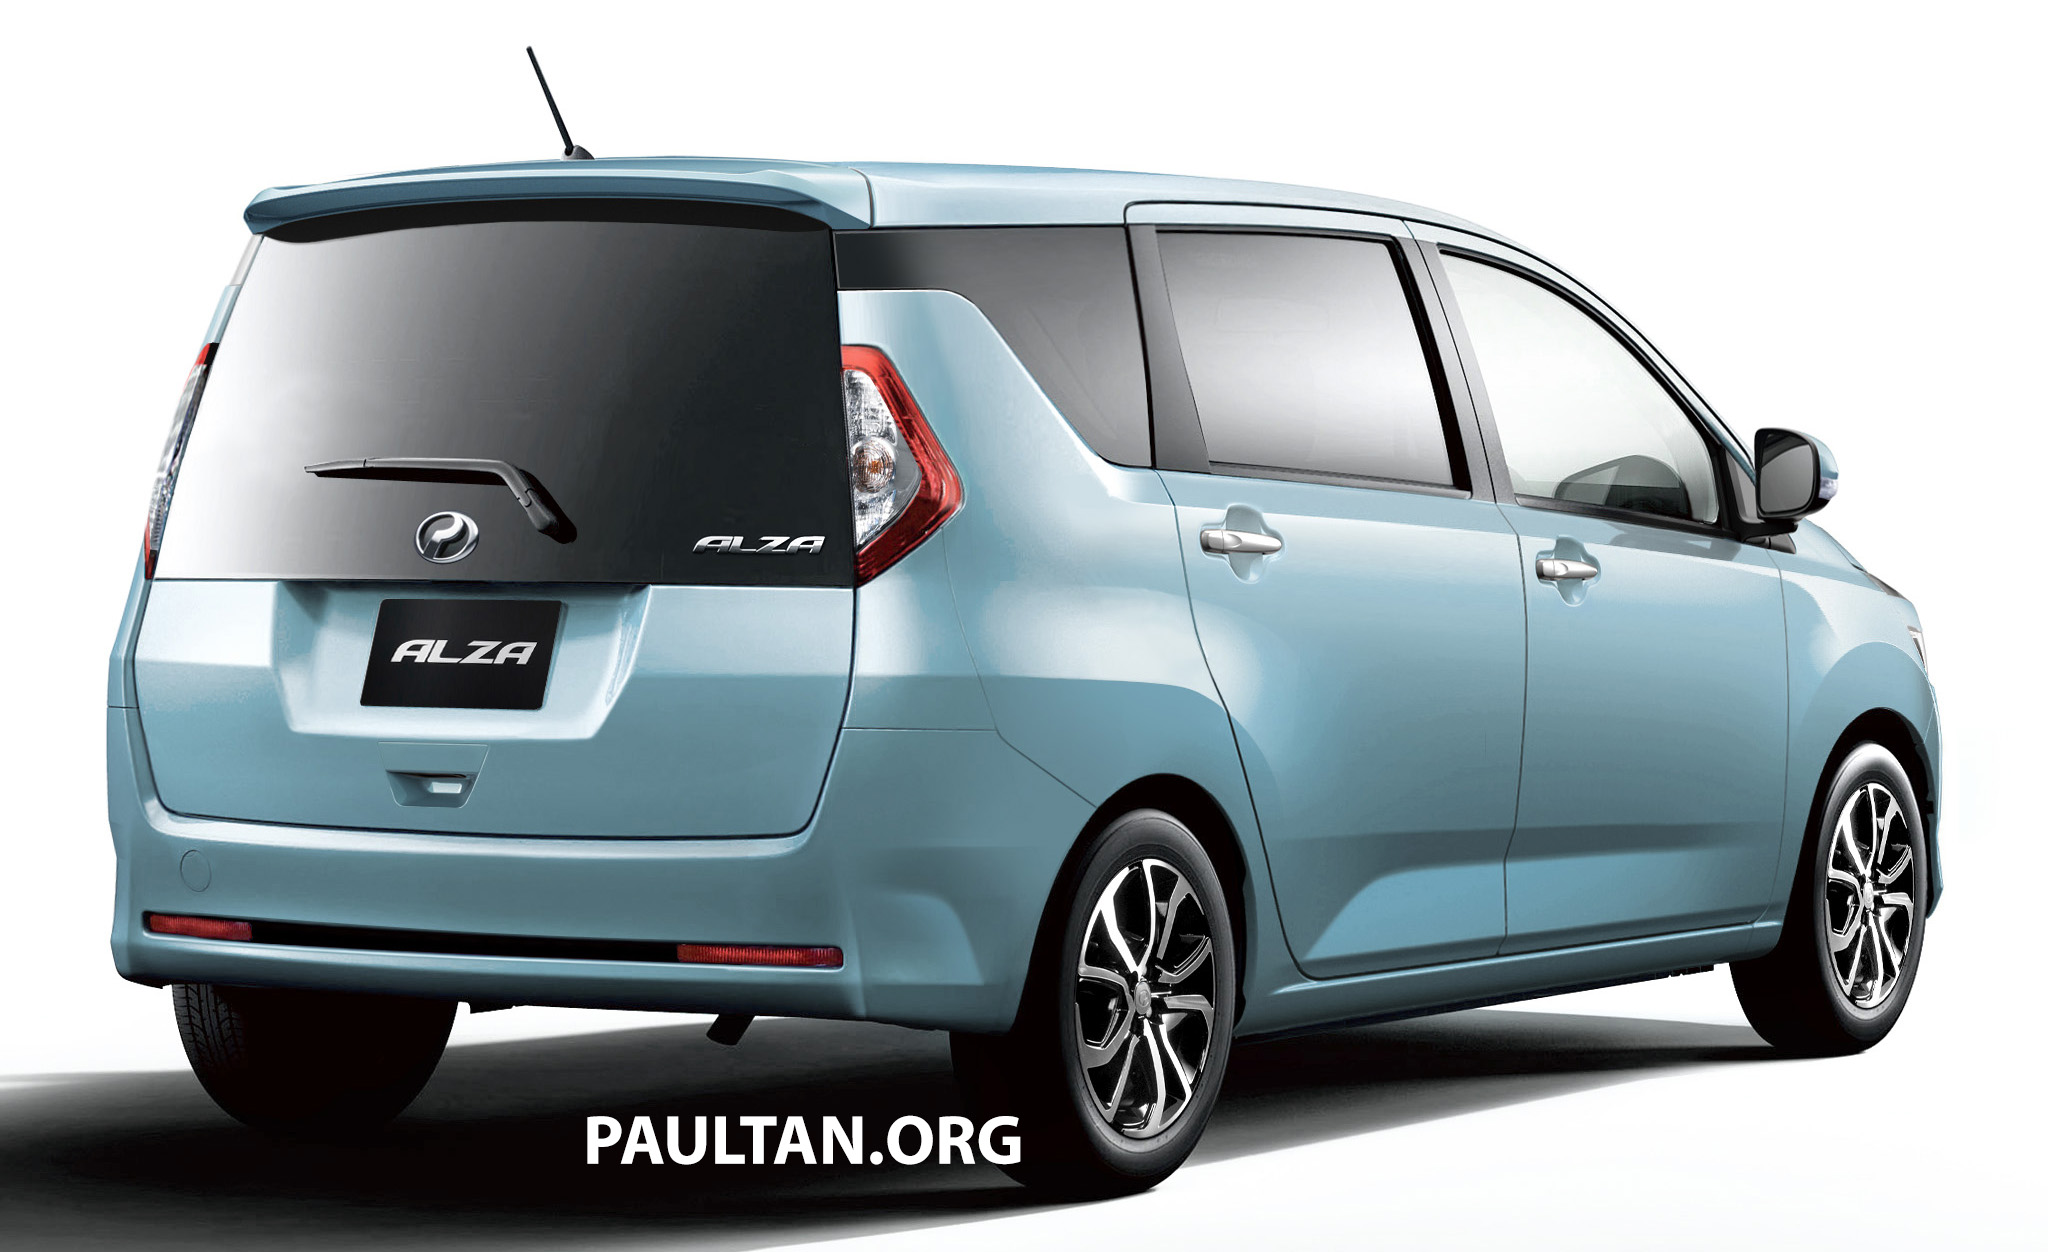 Perodua alza photo - 5